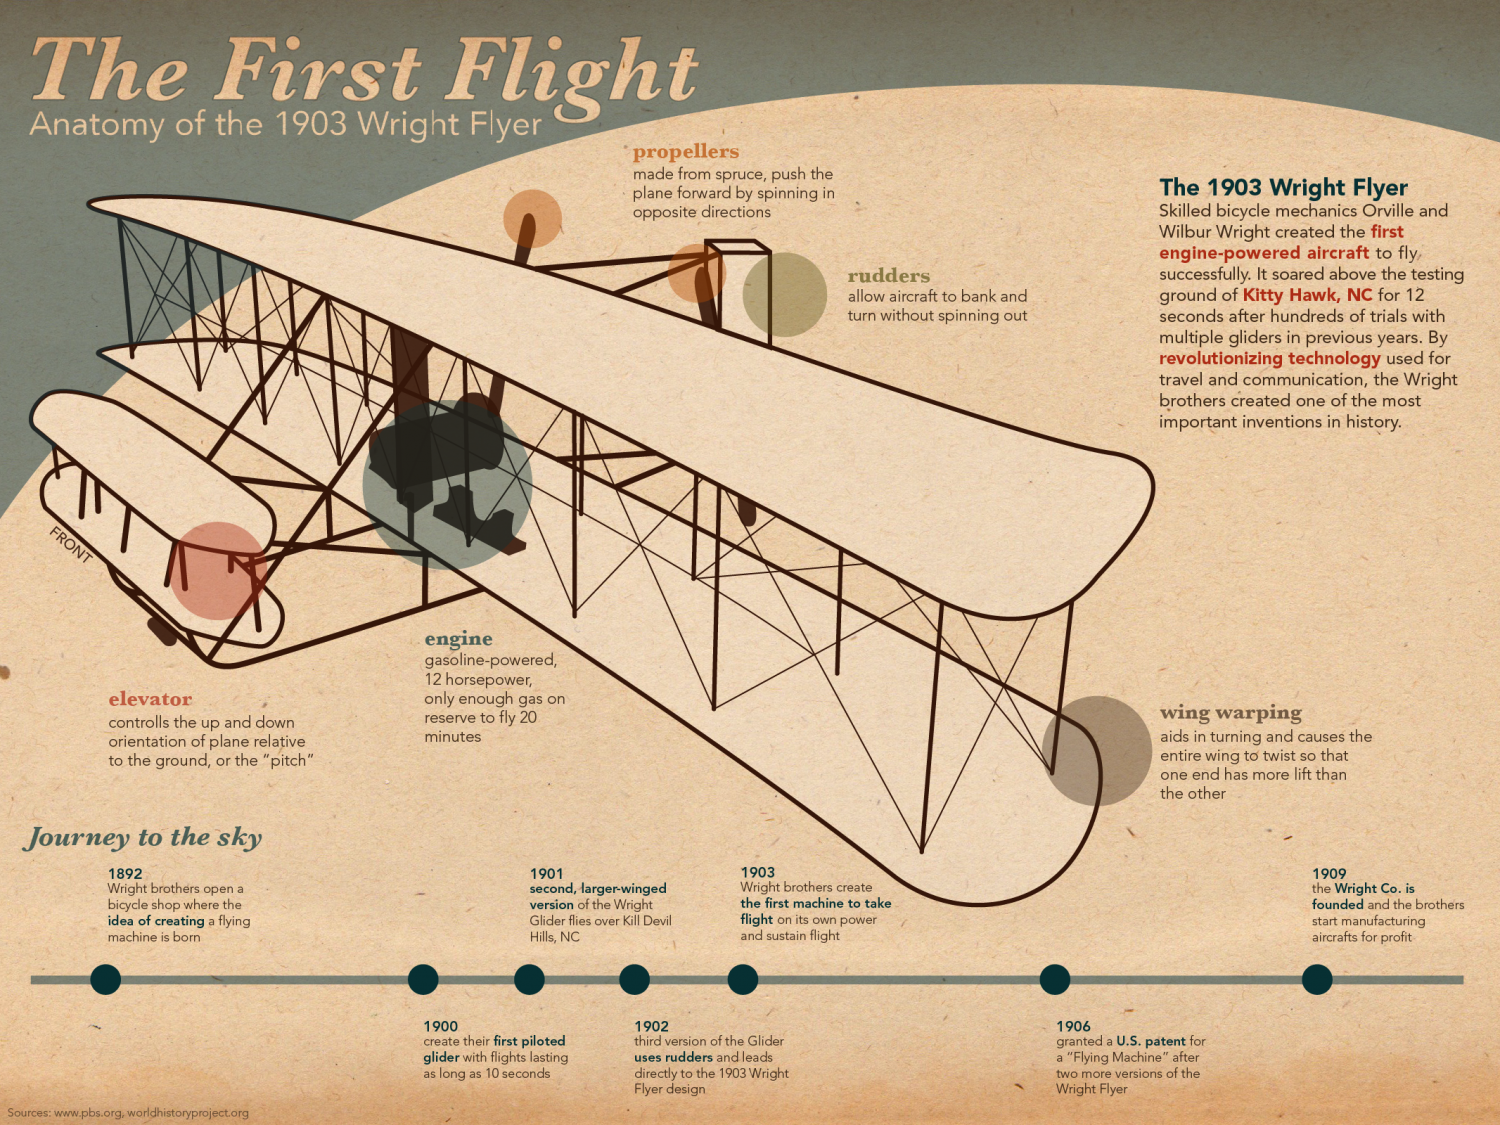 The First Flight: Anatomy of the 1903 Wright Flyer Infographic